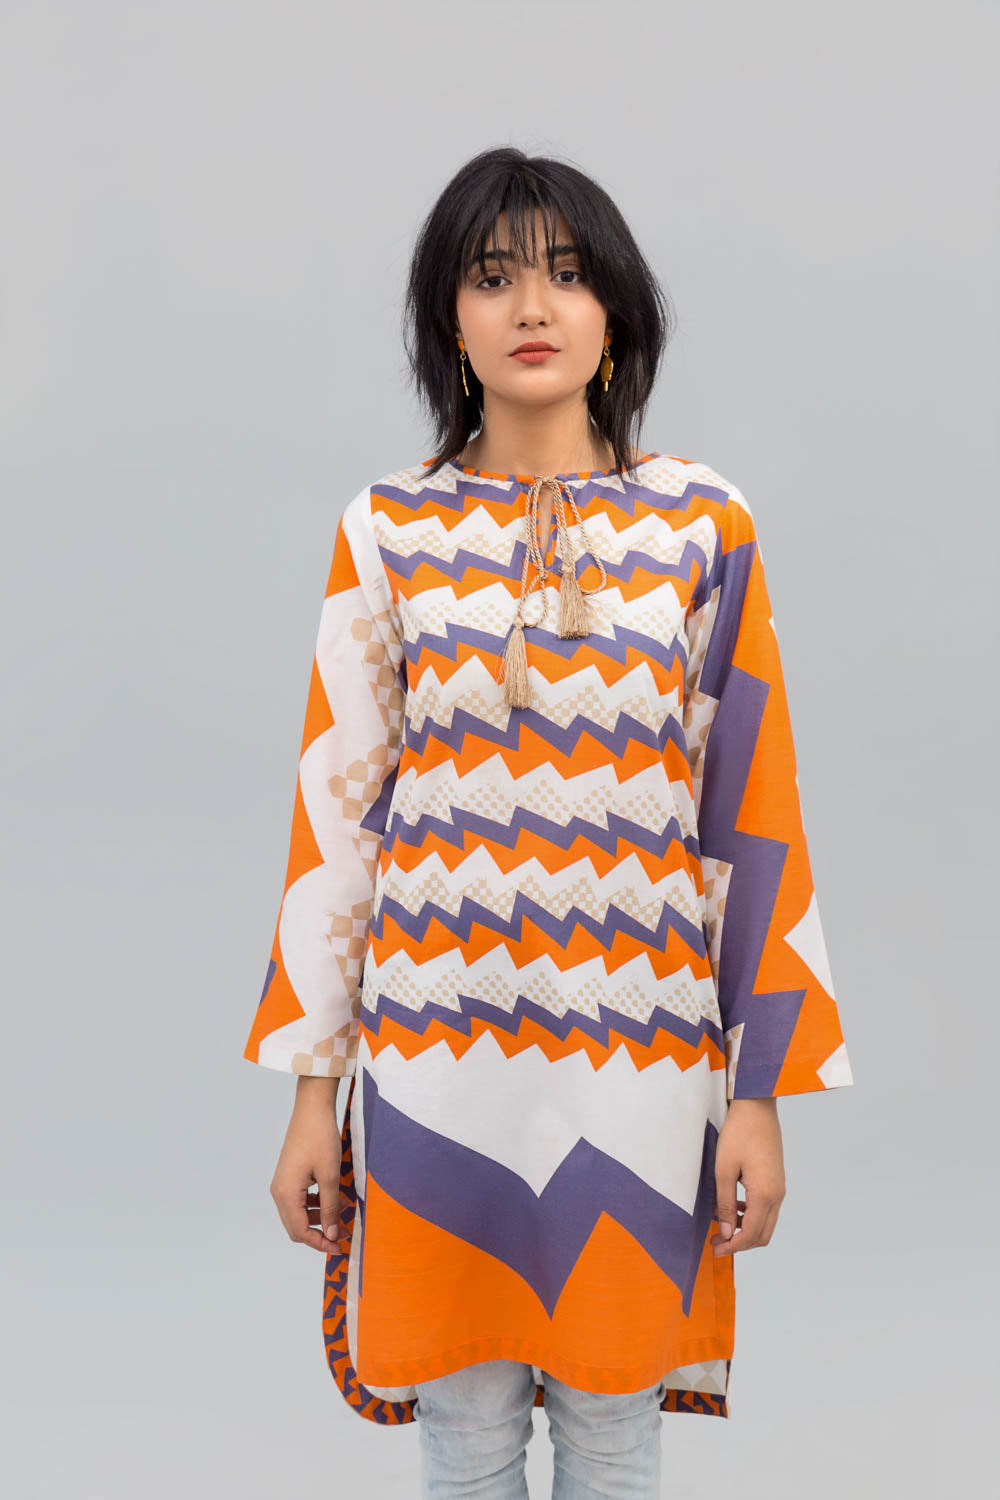 Orange & White Electric Wave Printed Shirt In Cotton (minimum 30 pieces & 10 from one design) - yesonline.pk